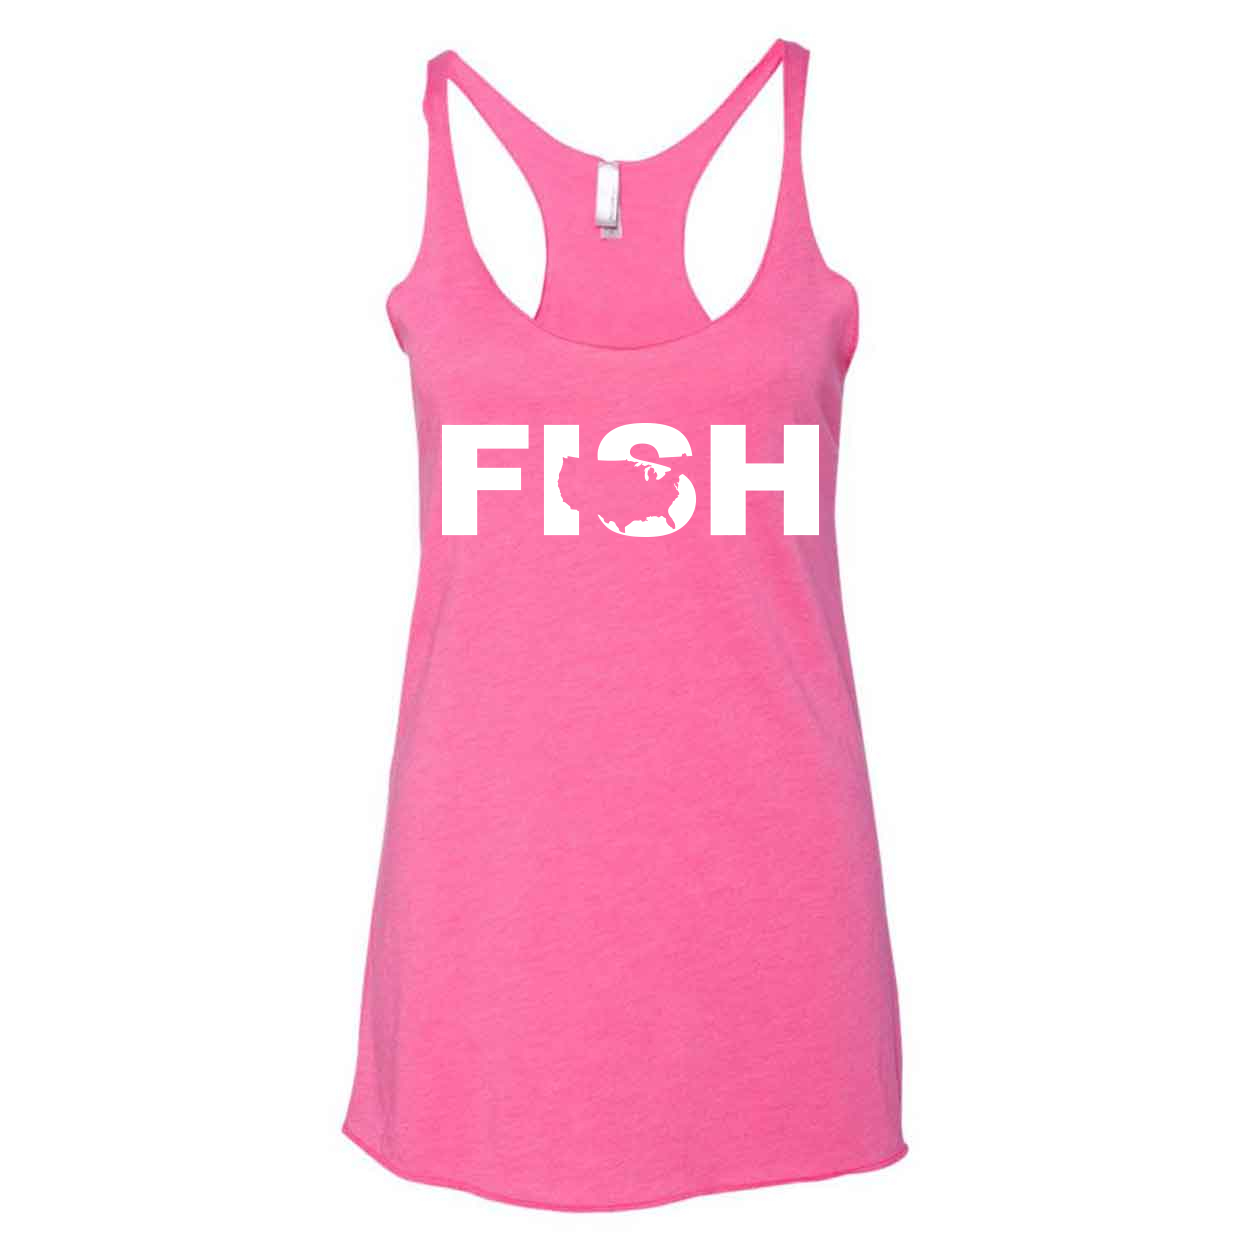 Fish United States Classic Women's Ultra Thin Tank Top Vintage Pink (White Logo)